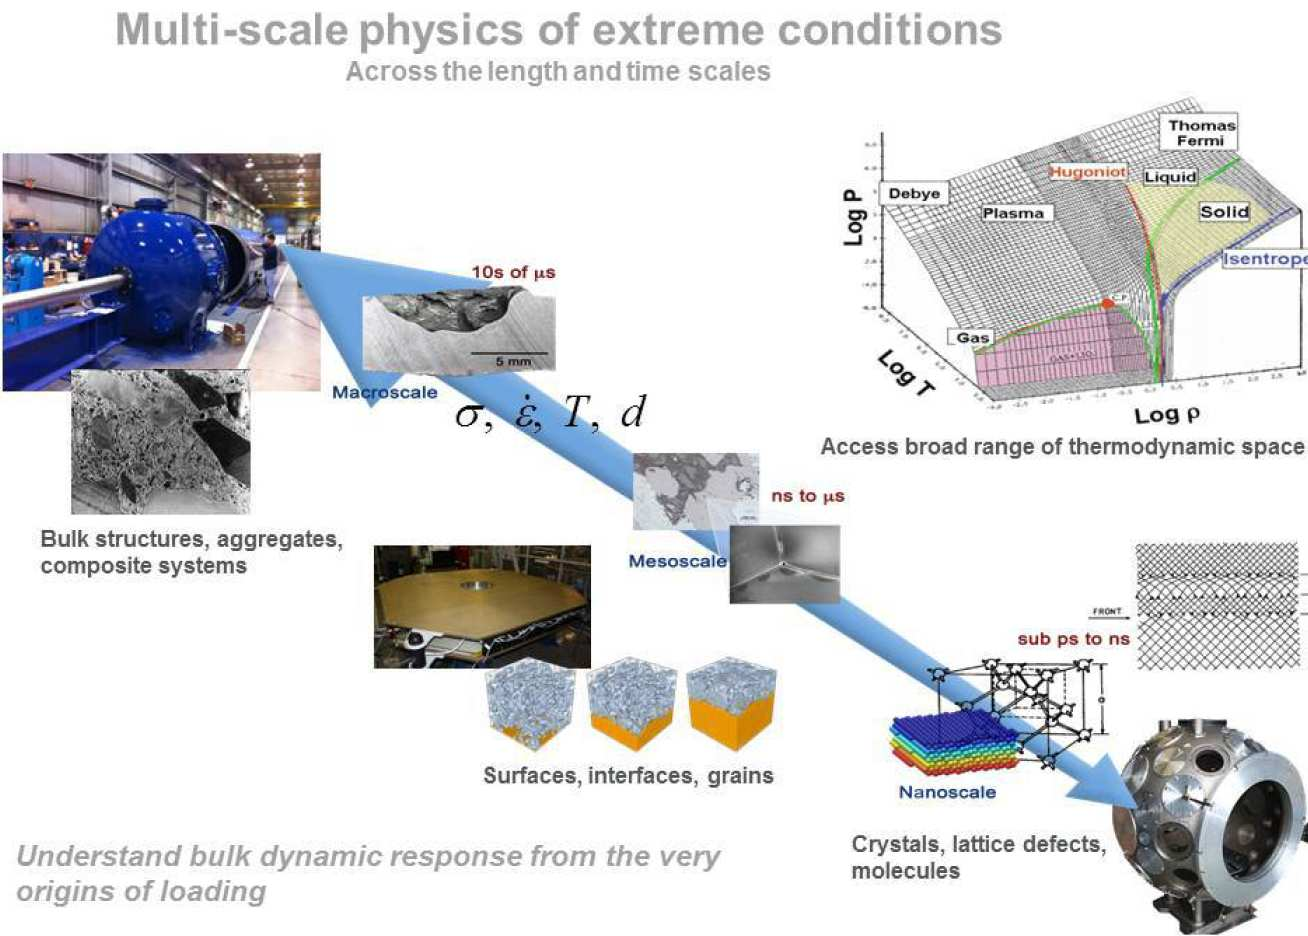 Multi-scale physics of extreme conditions